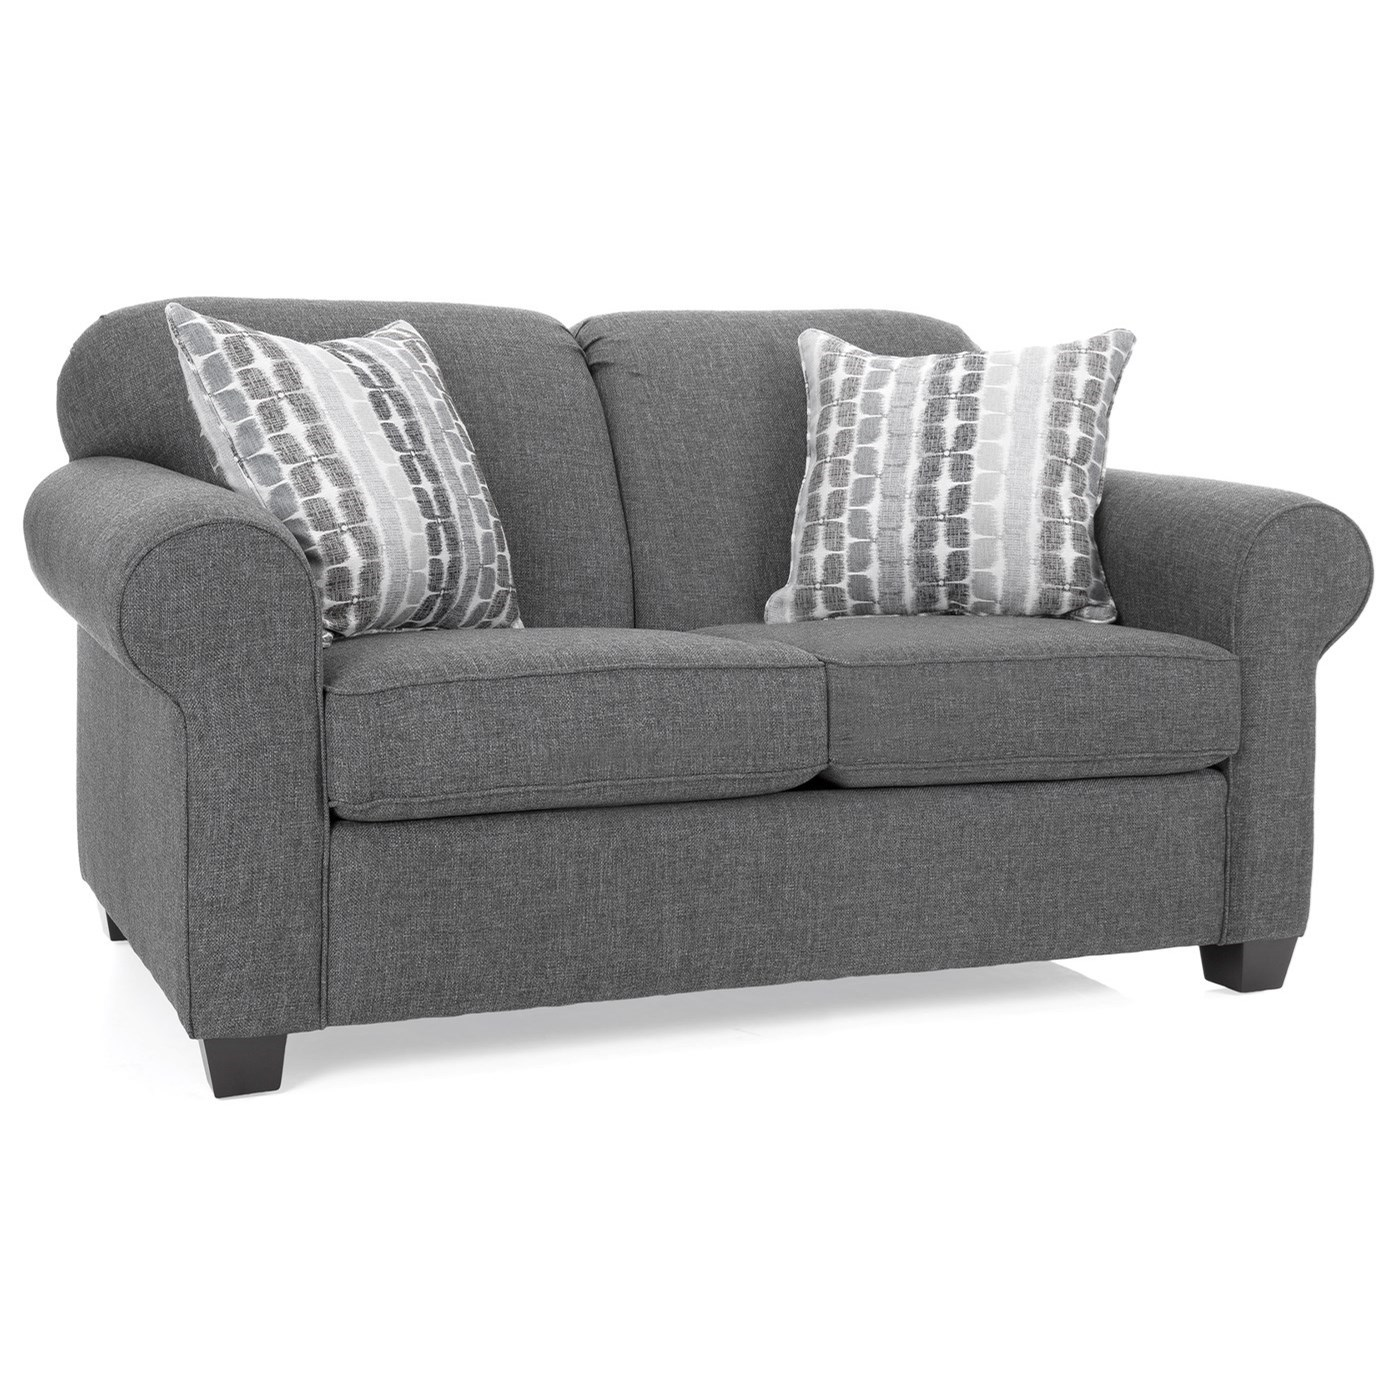 2455 Casual Loveseat by Decor-Rest at Johnny Janosik